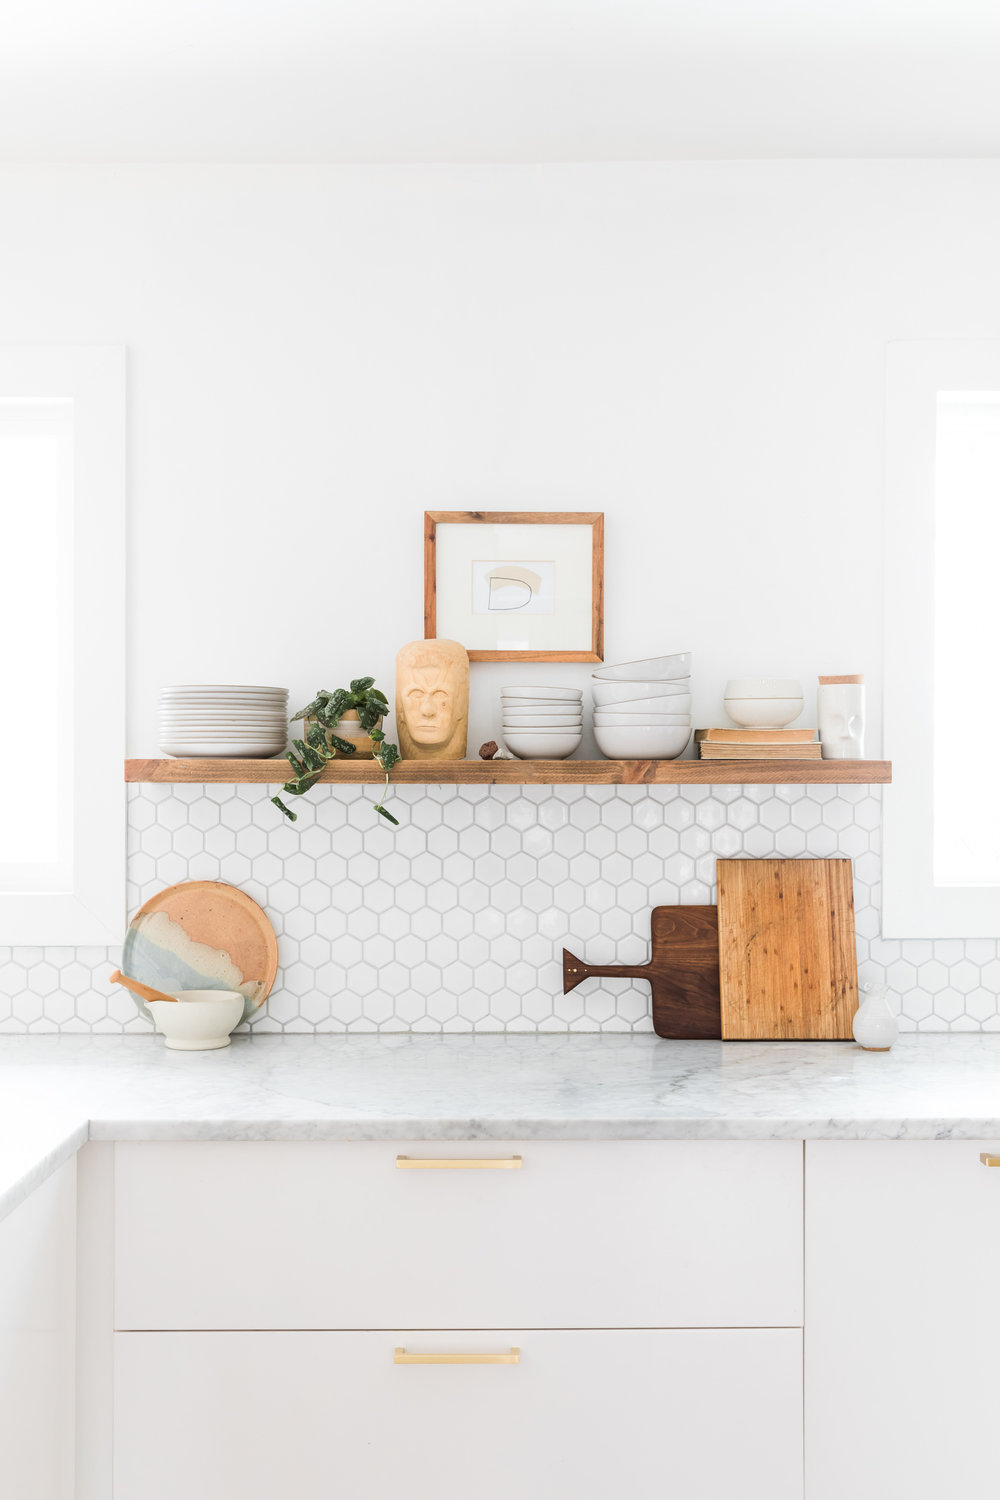 White kitchen with wooden floating shelves and marble countertops.